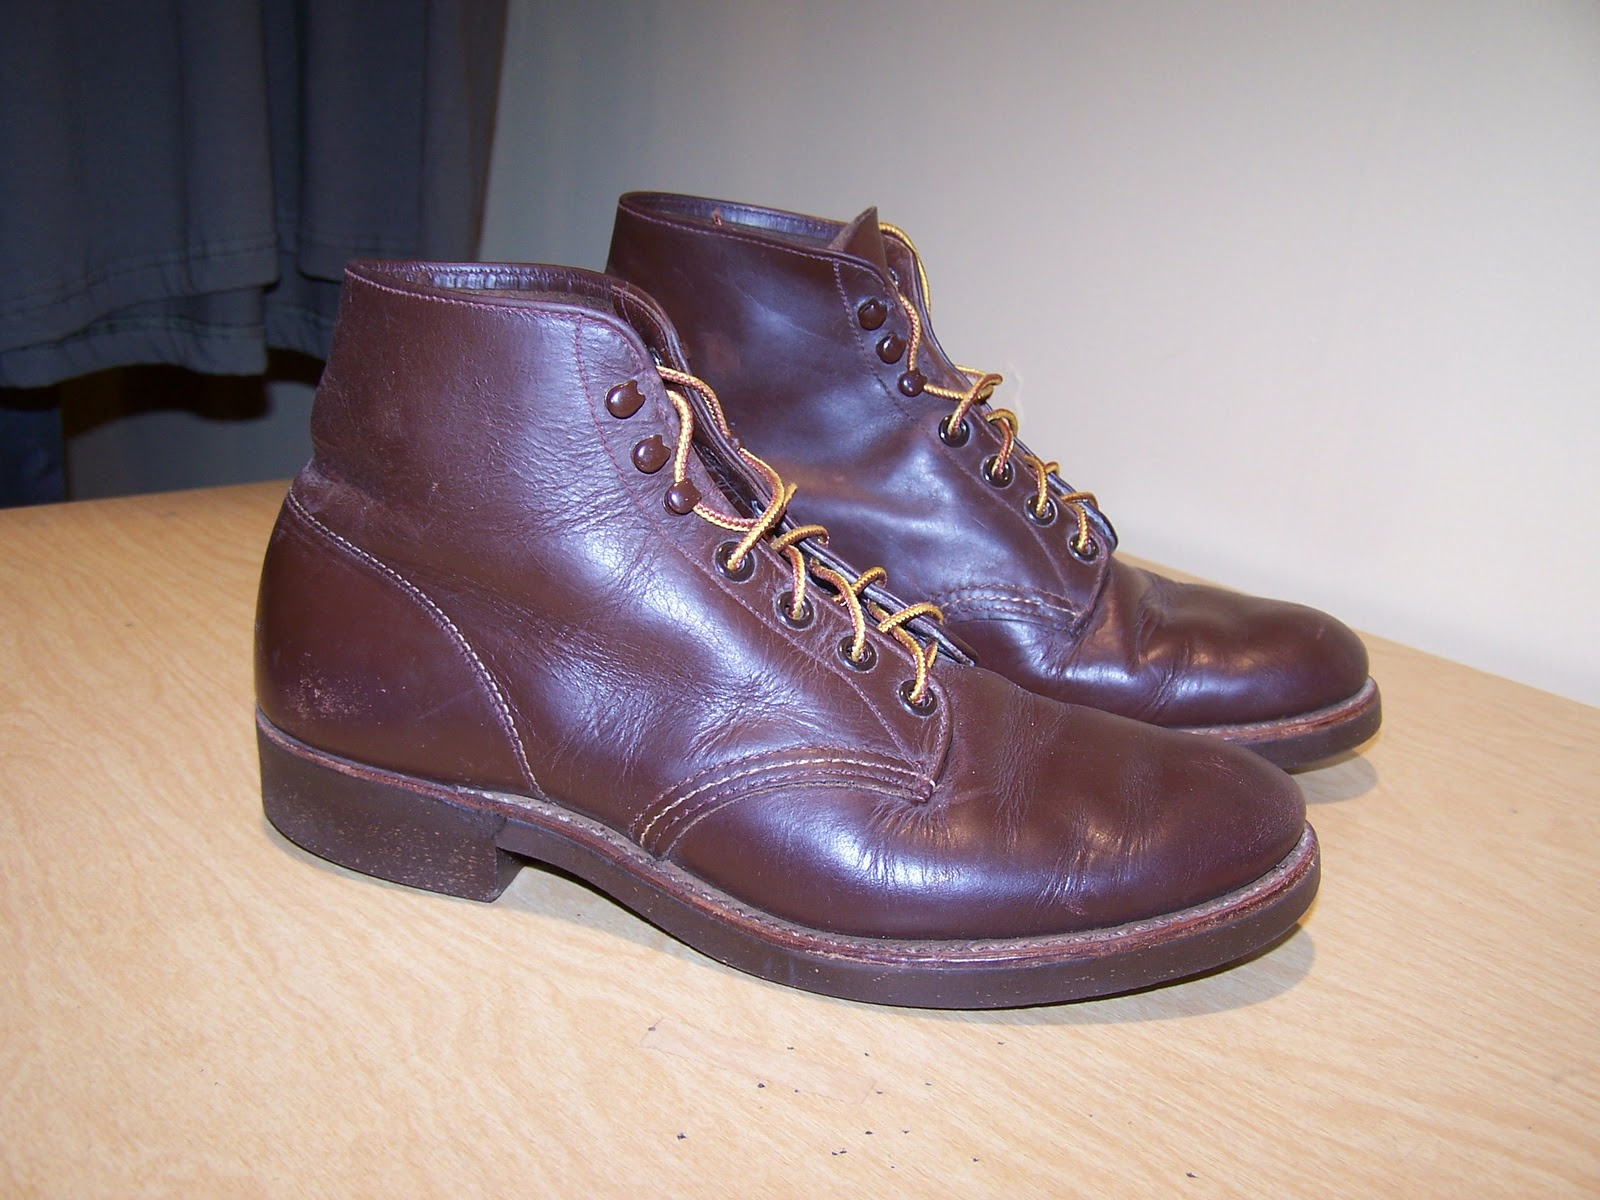 Vintage Red Wing Boots - Cr Boot